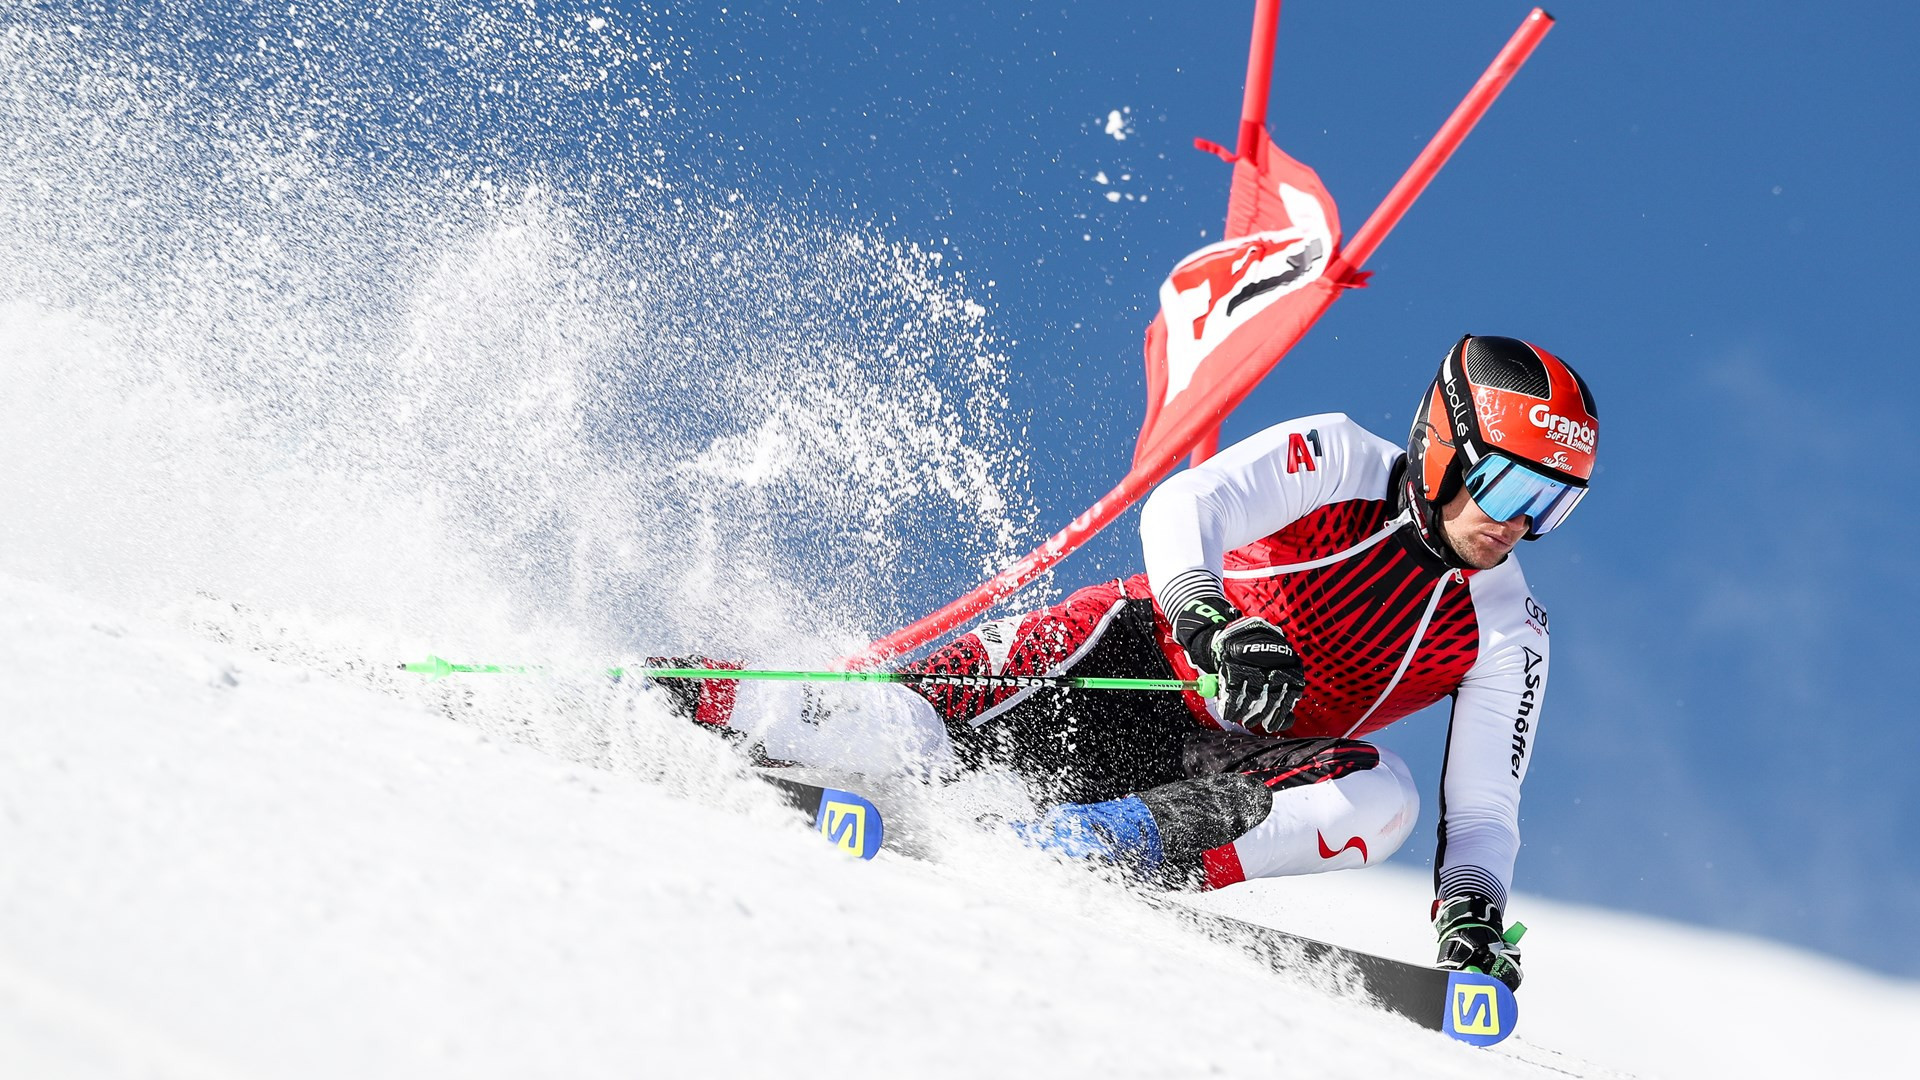 Roland Leitinger was pleased with his efforts at altitude ©Ski Austria